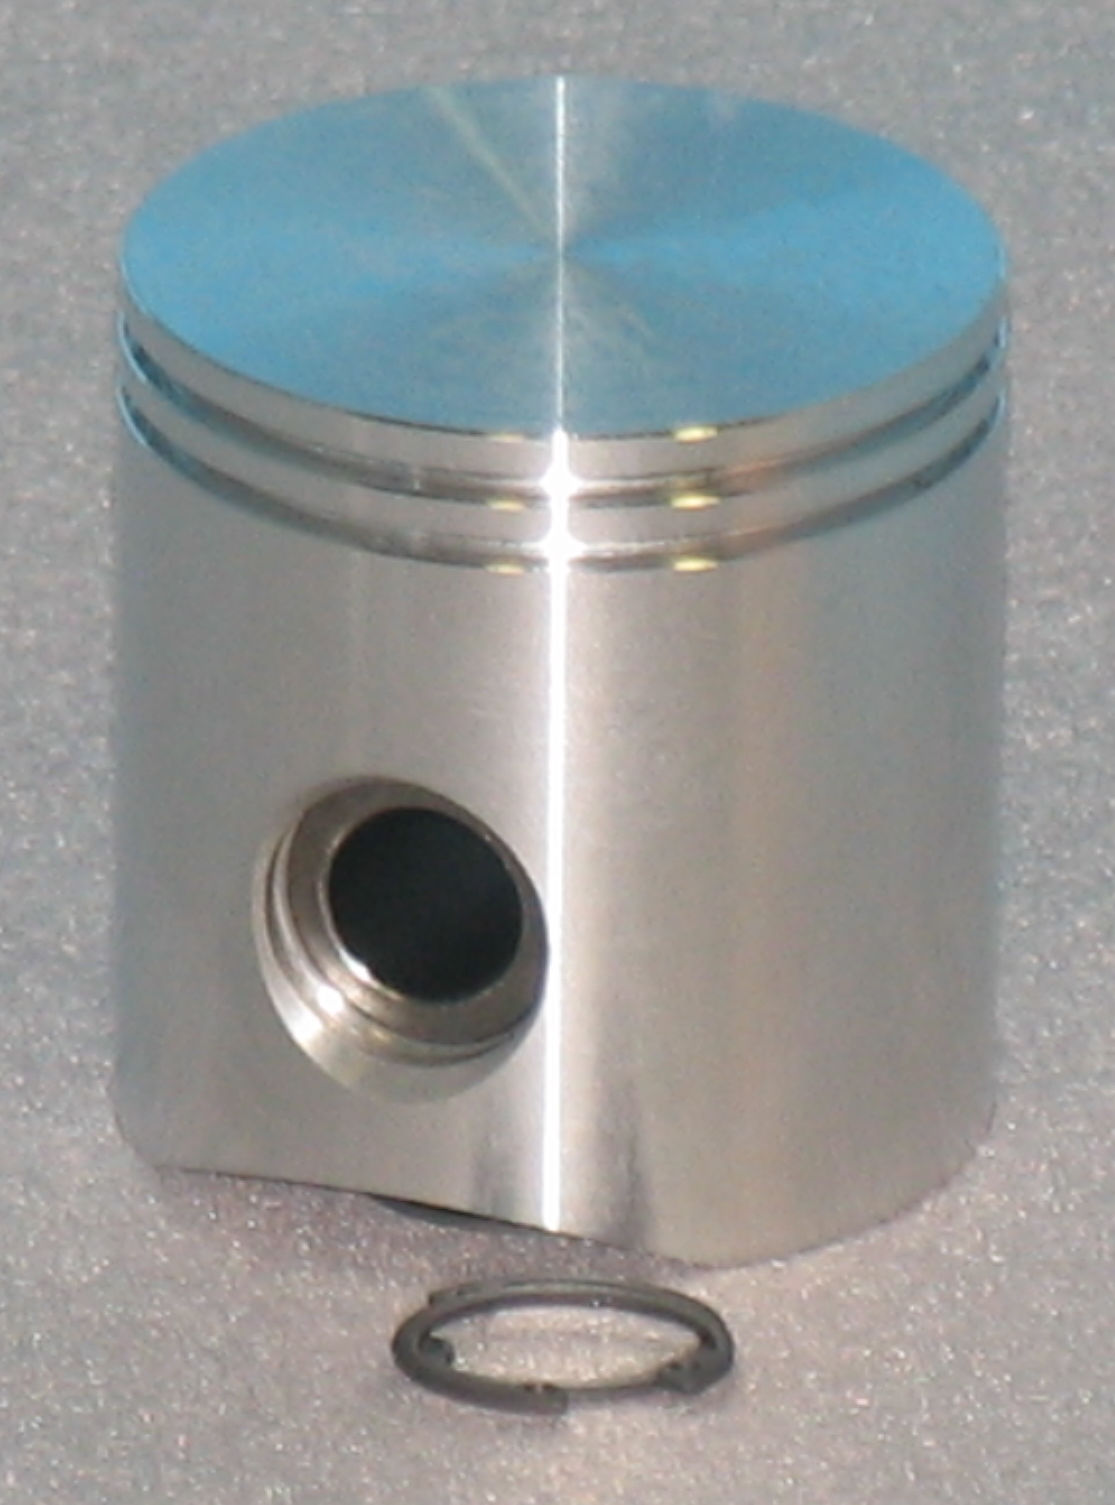 PST-1973 Piston; R/N 6D68-962 (Two Ring Piston)